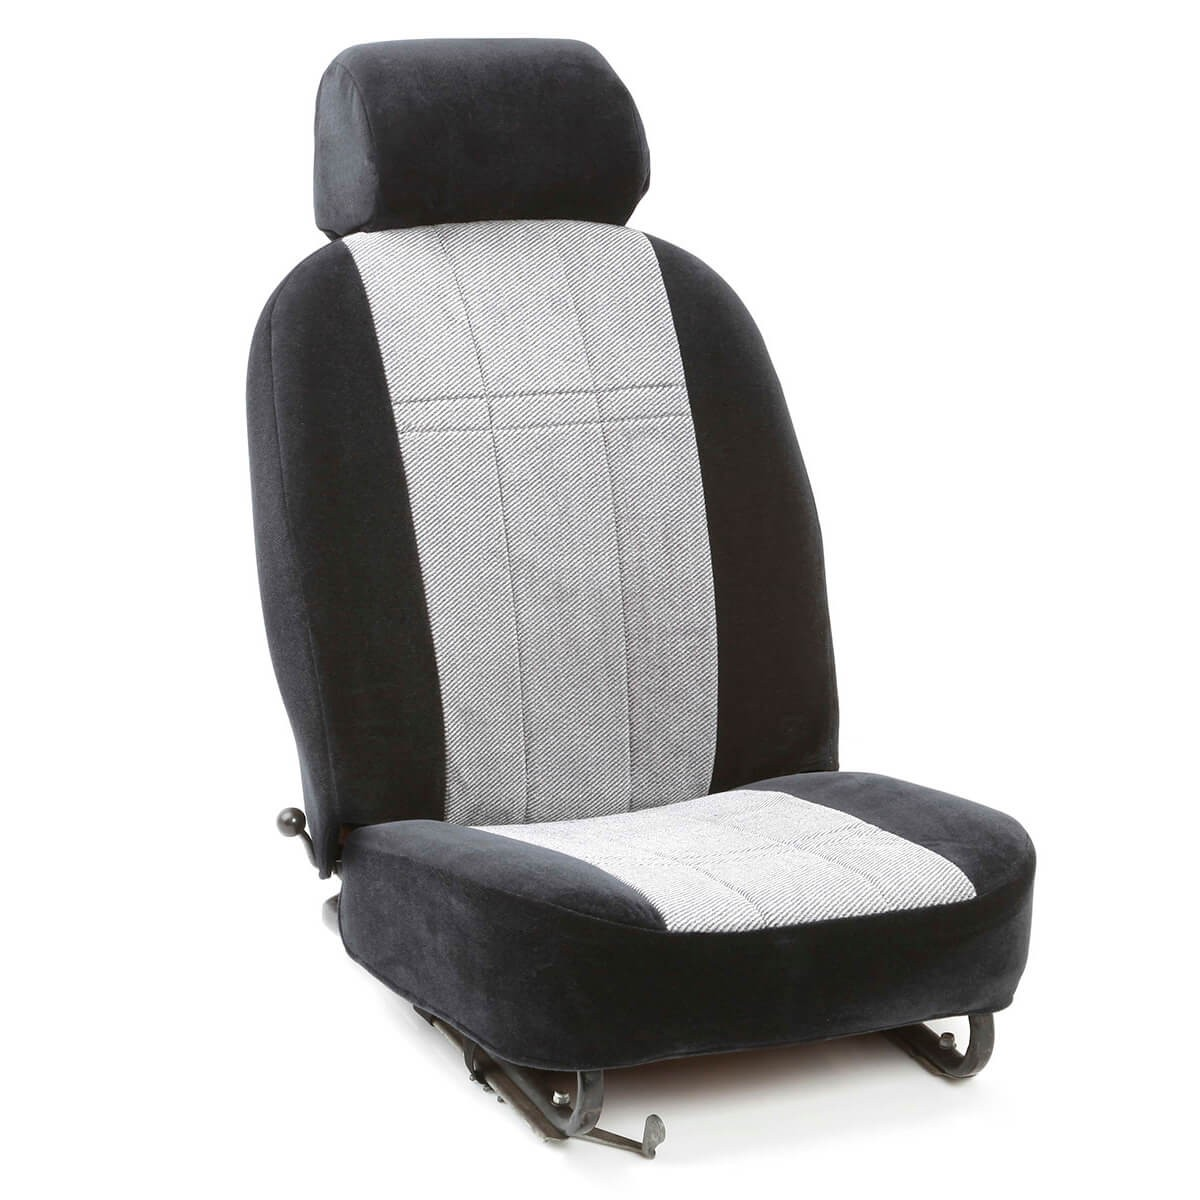 Fitted Velour Seat Covers Seats Amp Seat Kits Upholstery